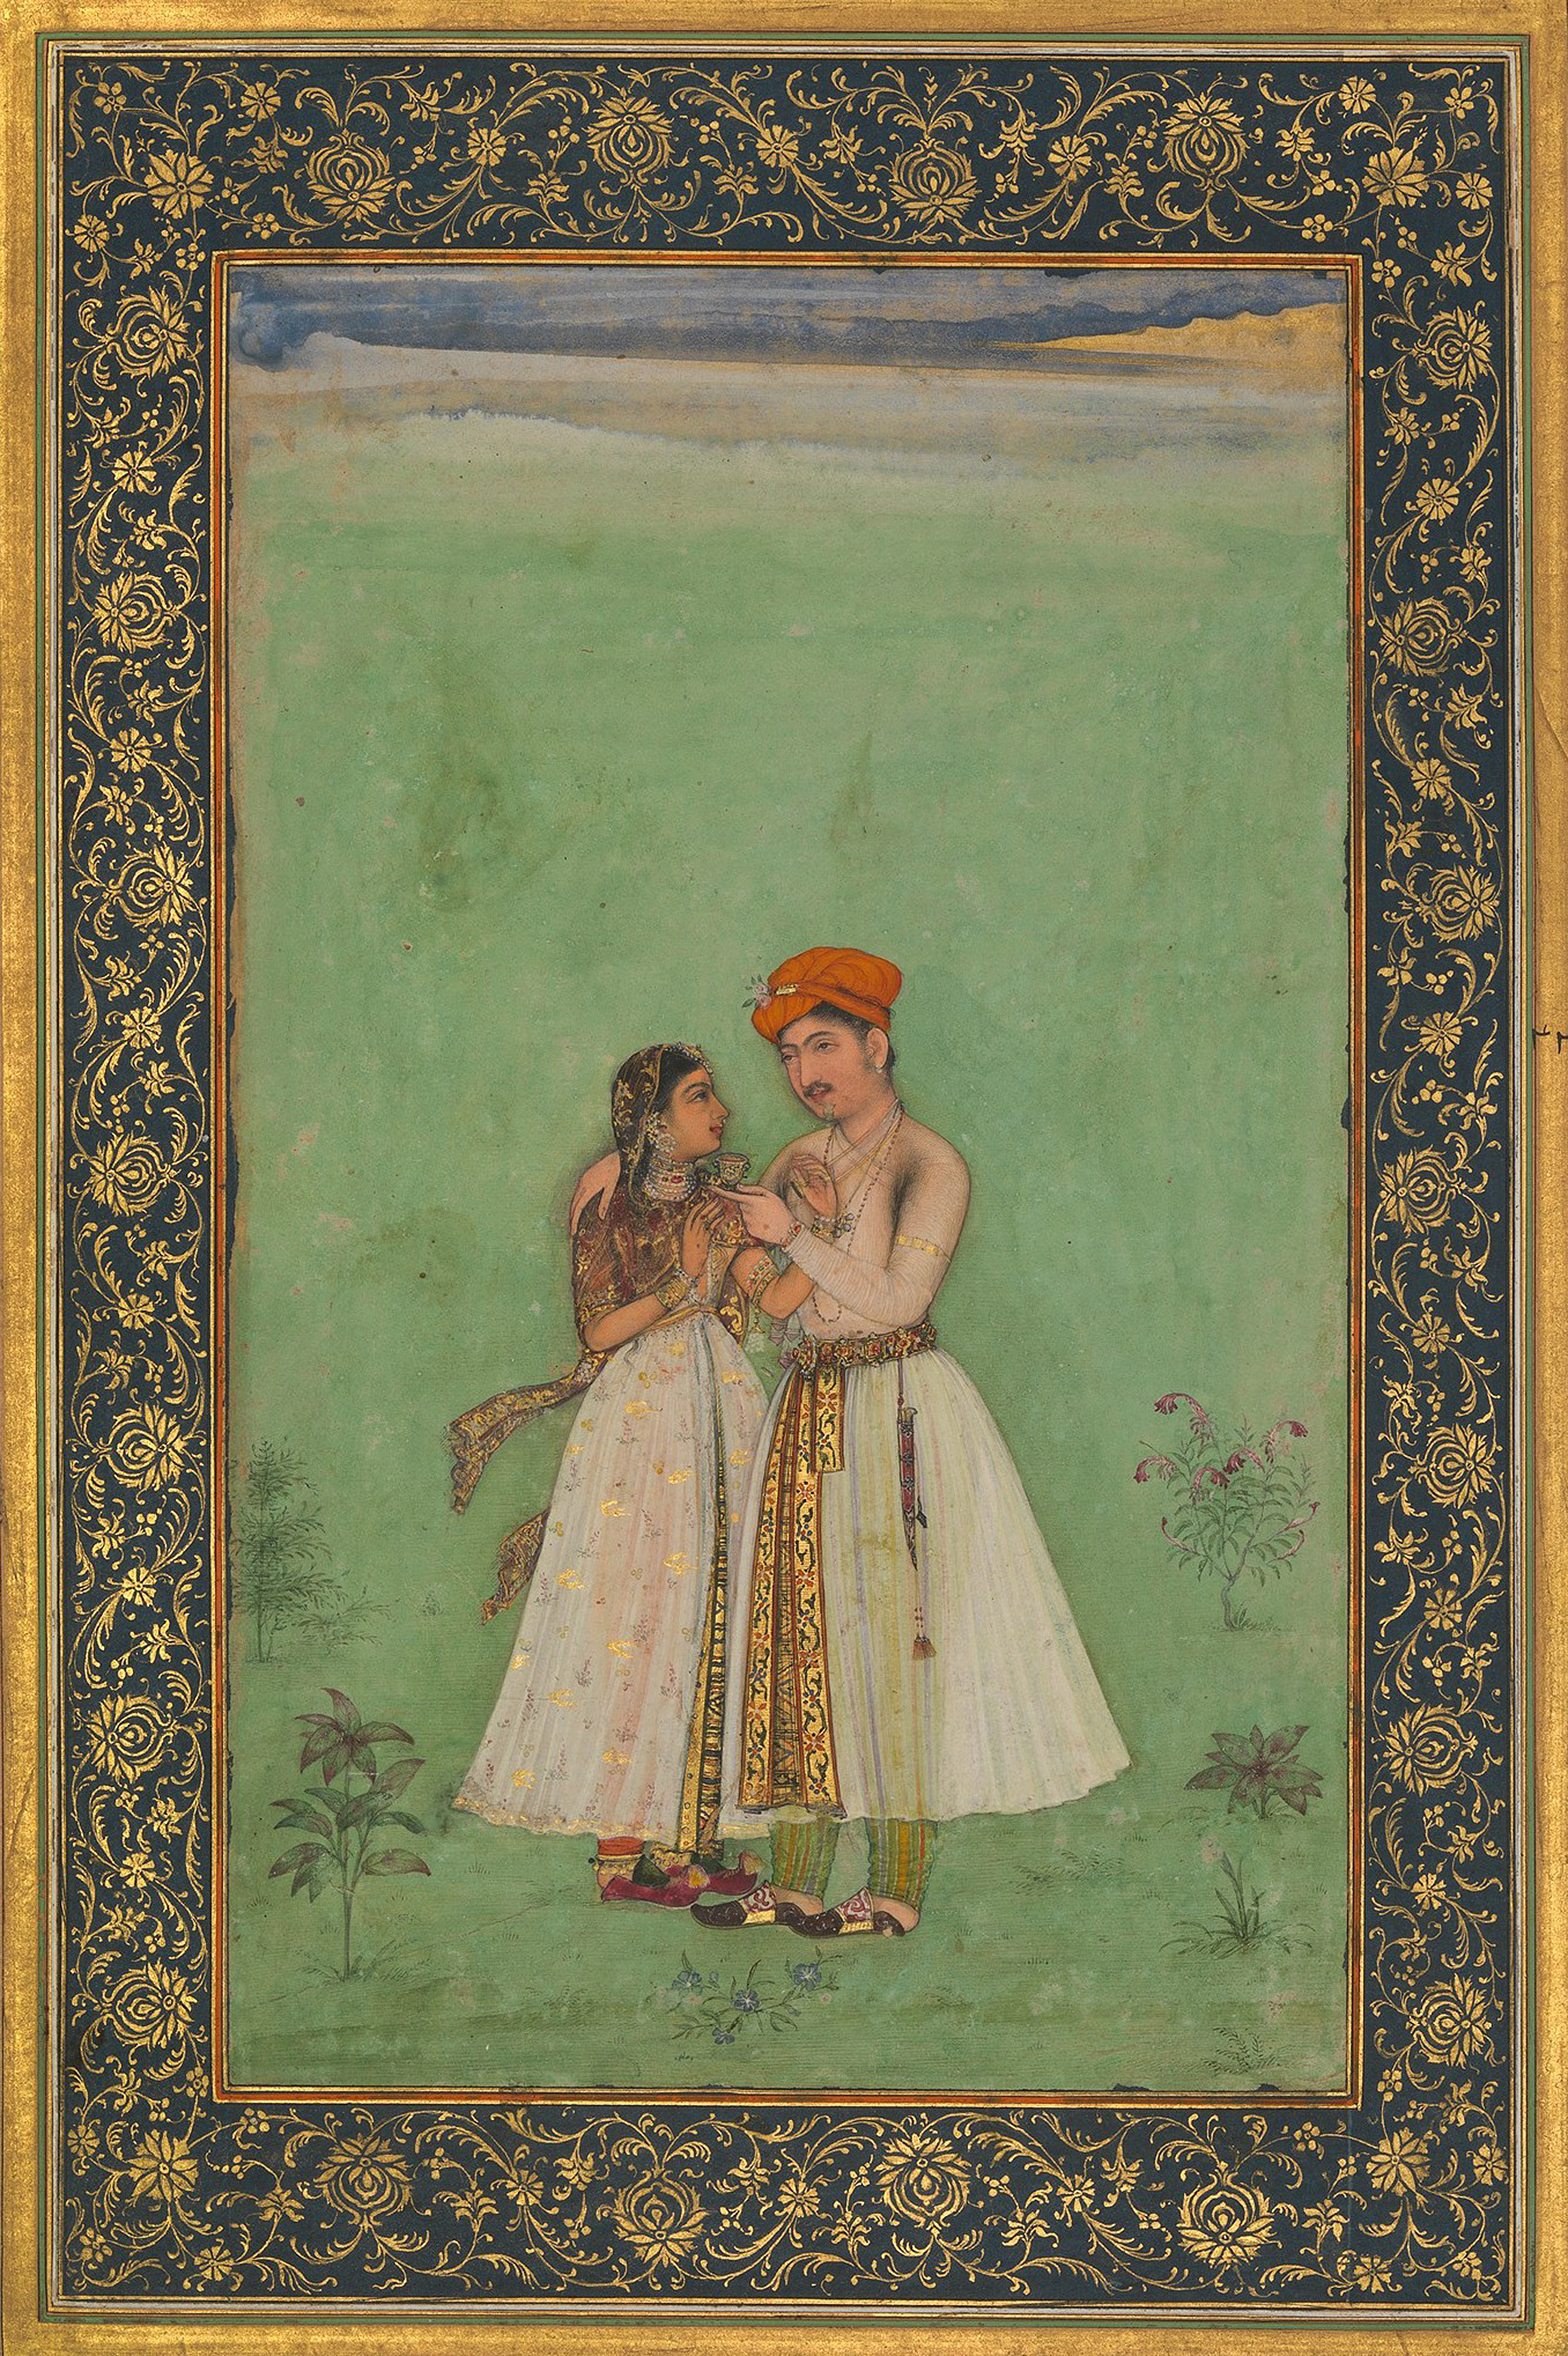 A Nineteenth-Century Power Couple in Hyderabad | Lapham's